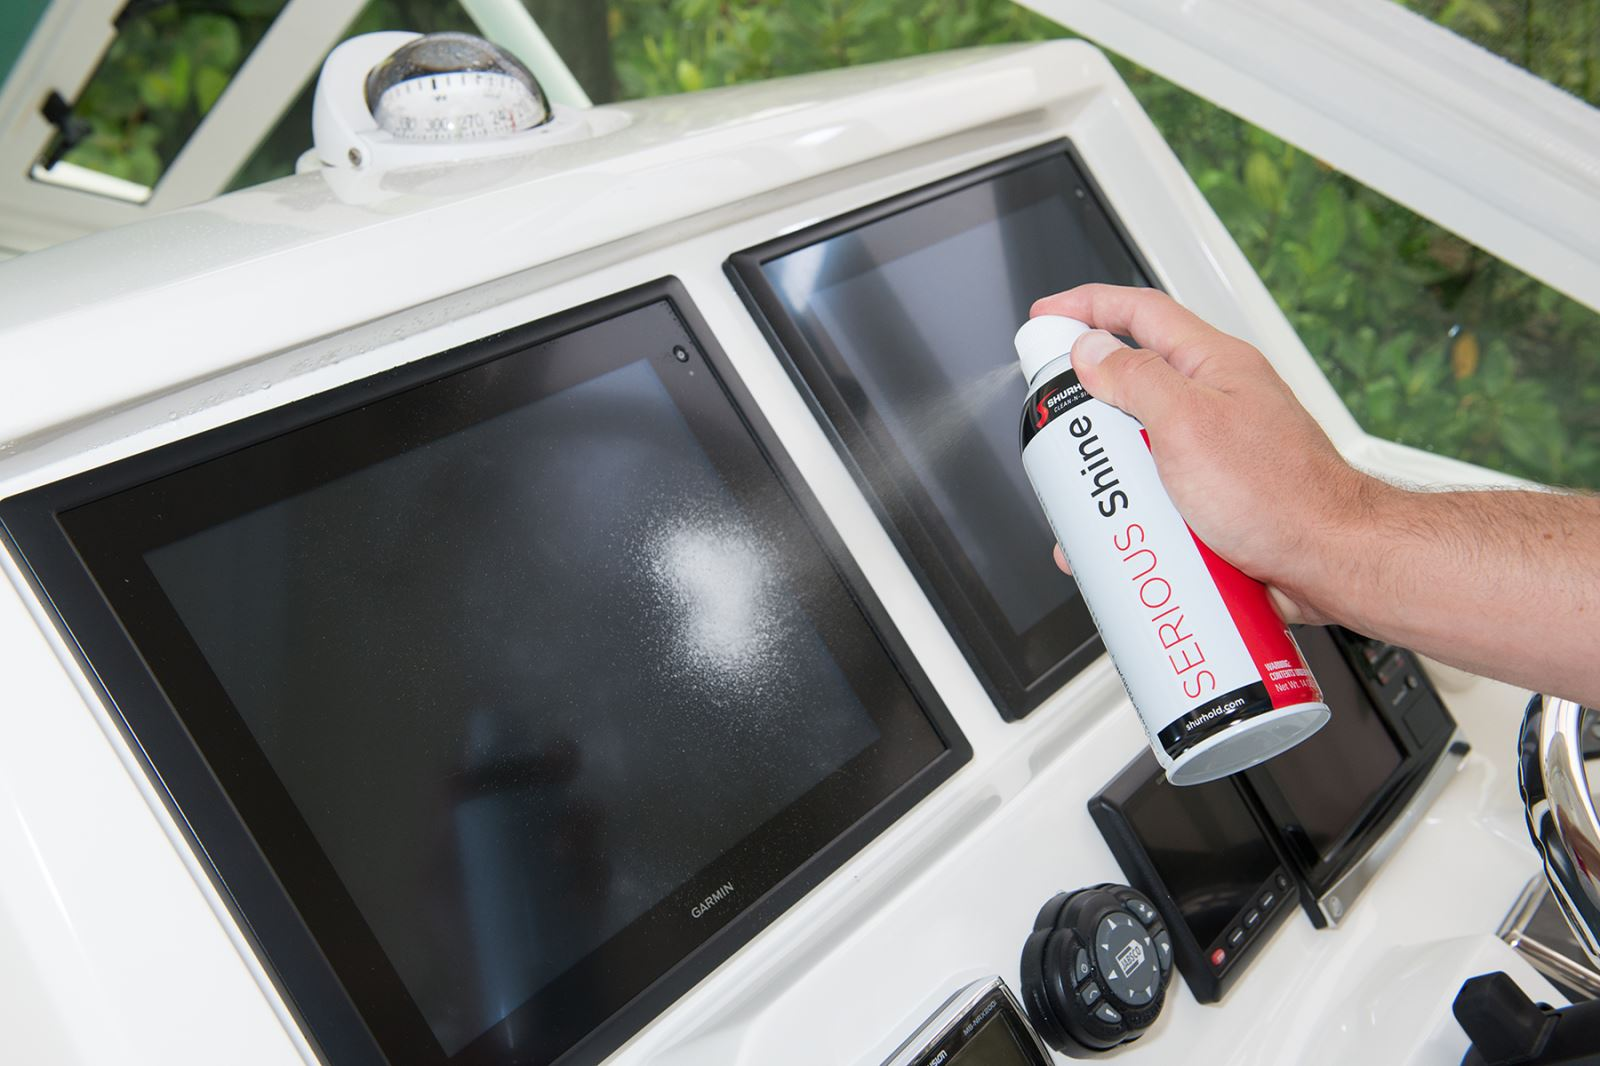 Spray, Wipe and Touchscreens are Completely Clean | Great Lakes Boating